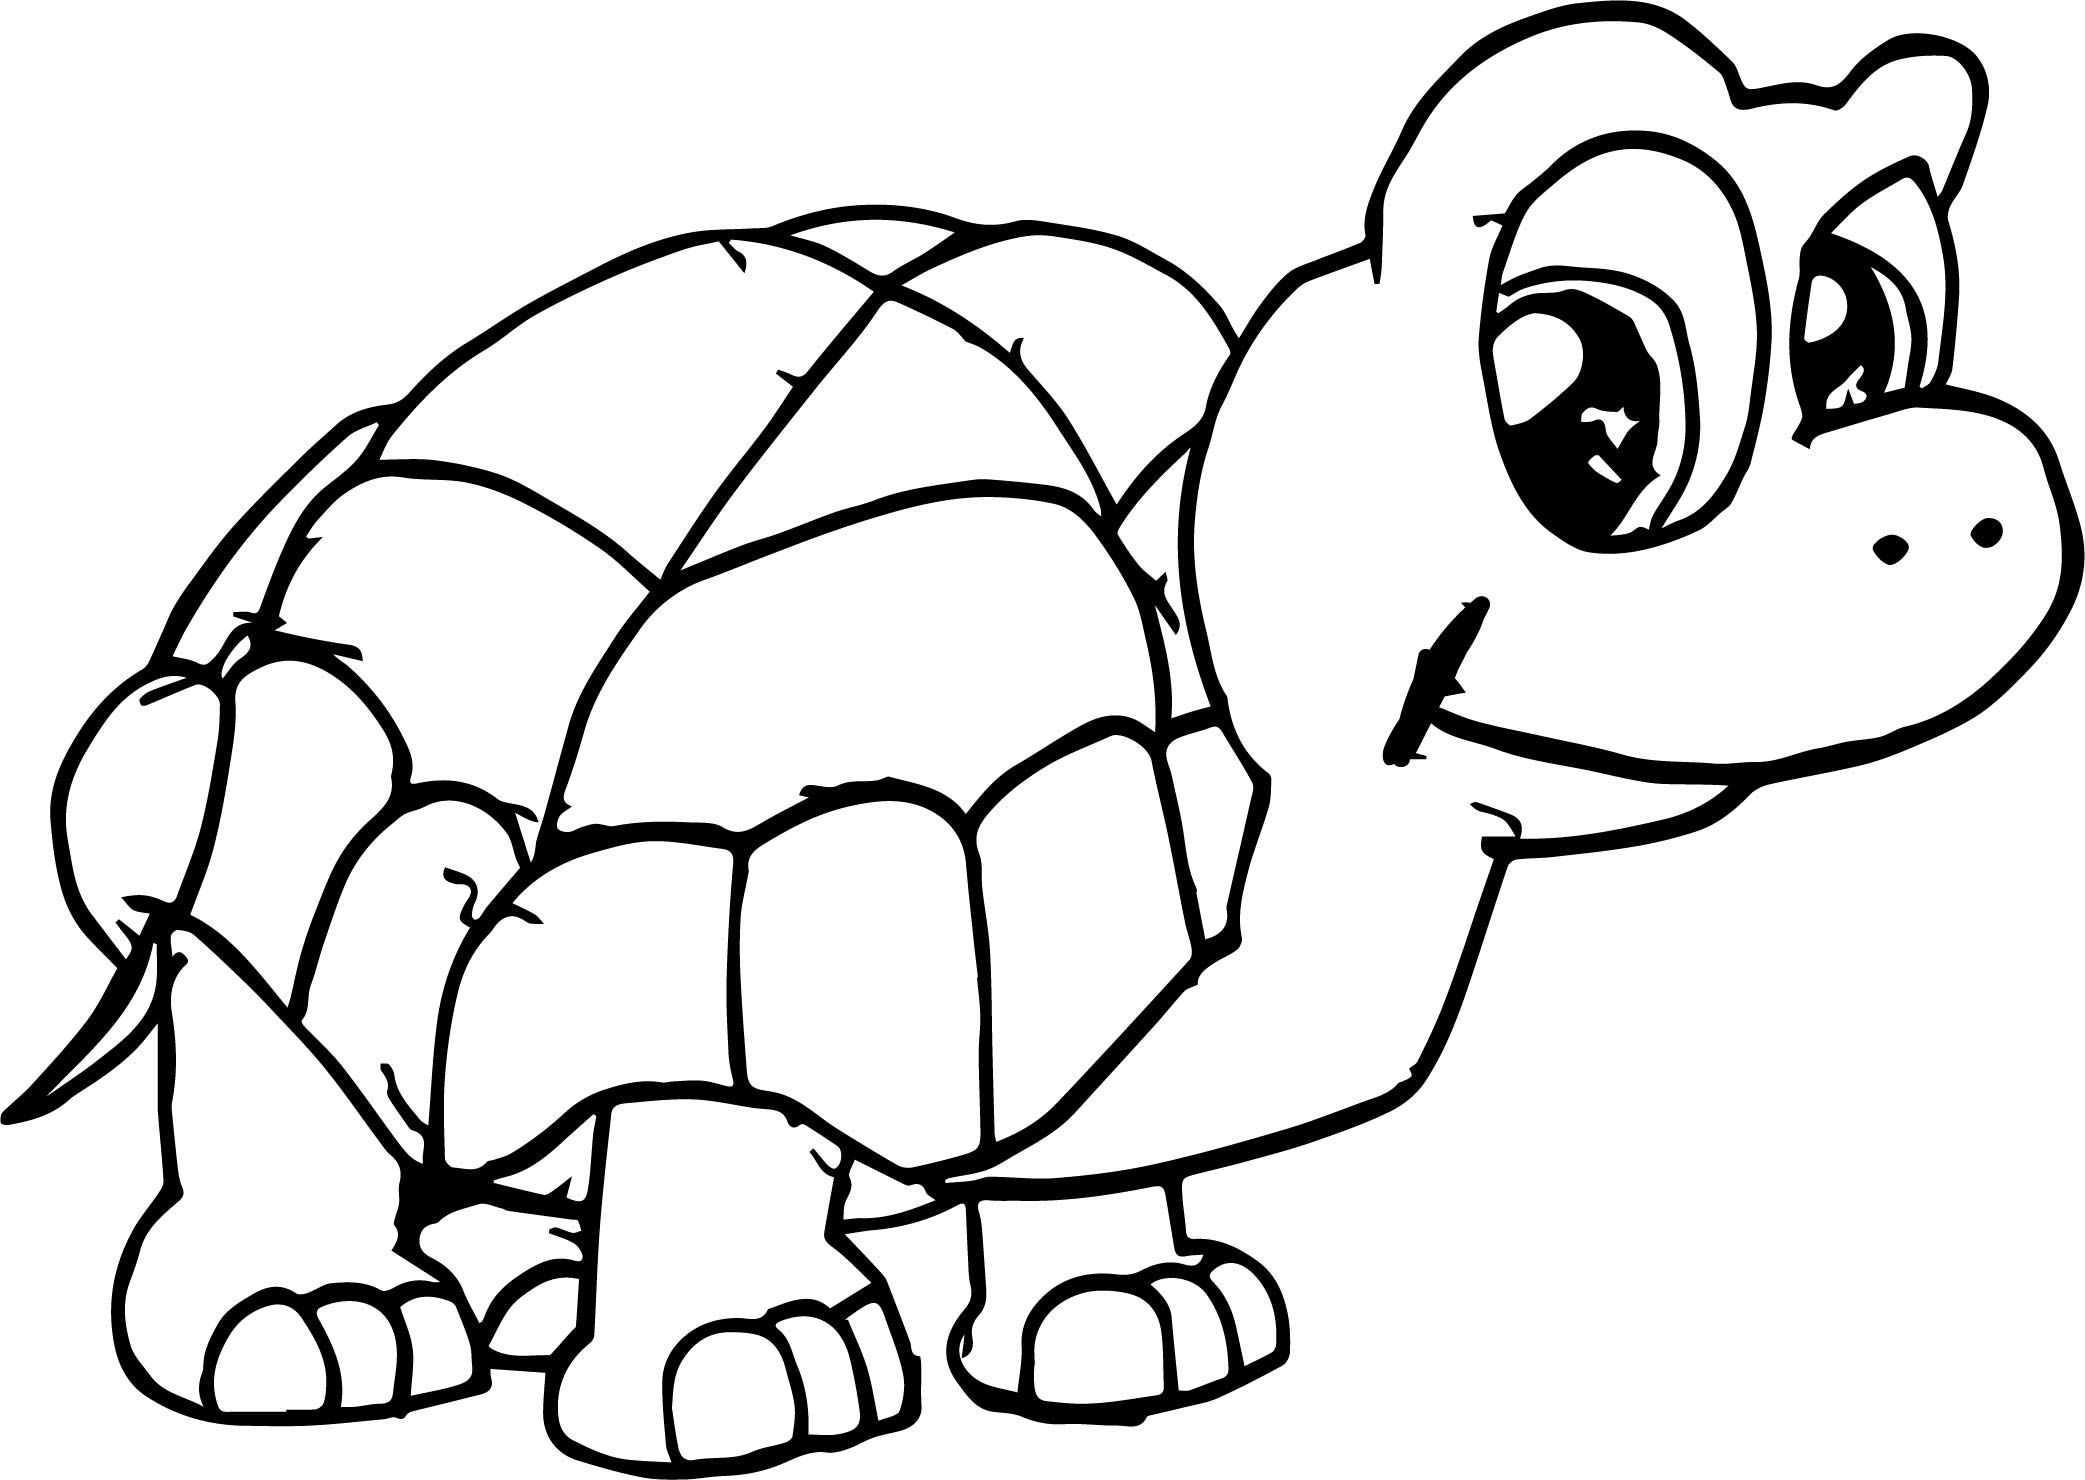 Nice Waiting Tortoise Turtle Coloring Page Turtle Coloring Pages Coloring Pages Fish Coloring Page